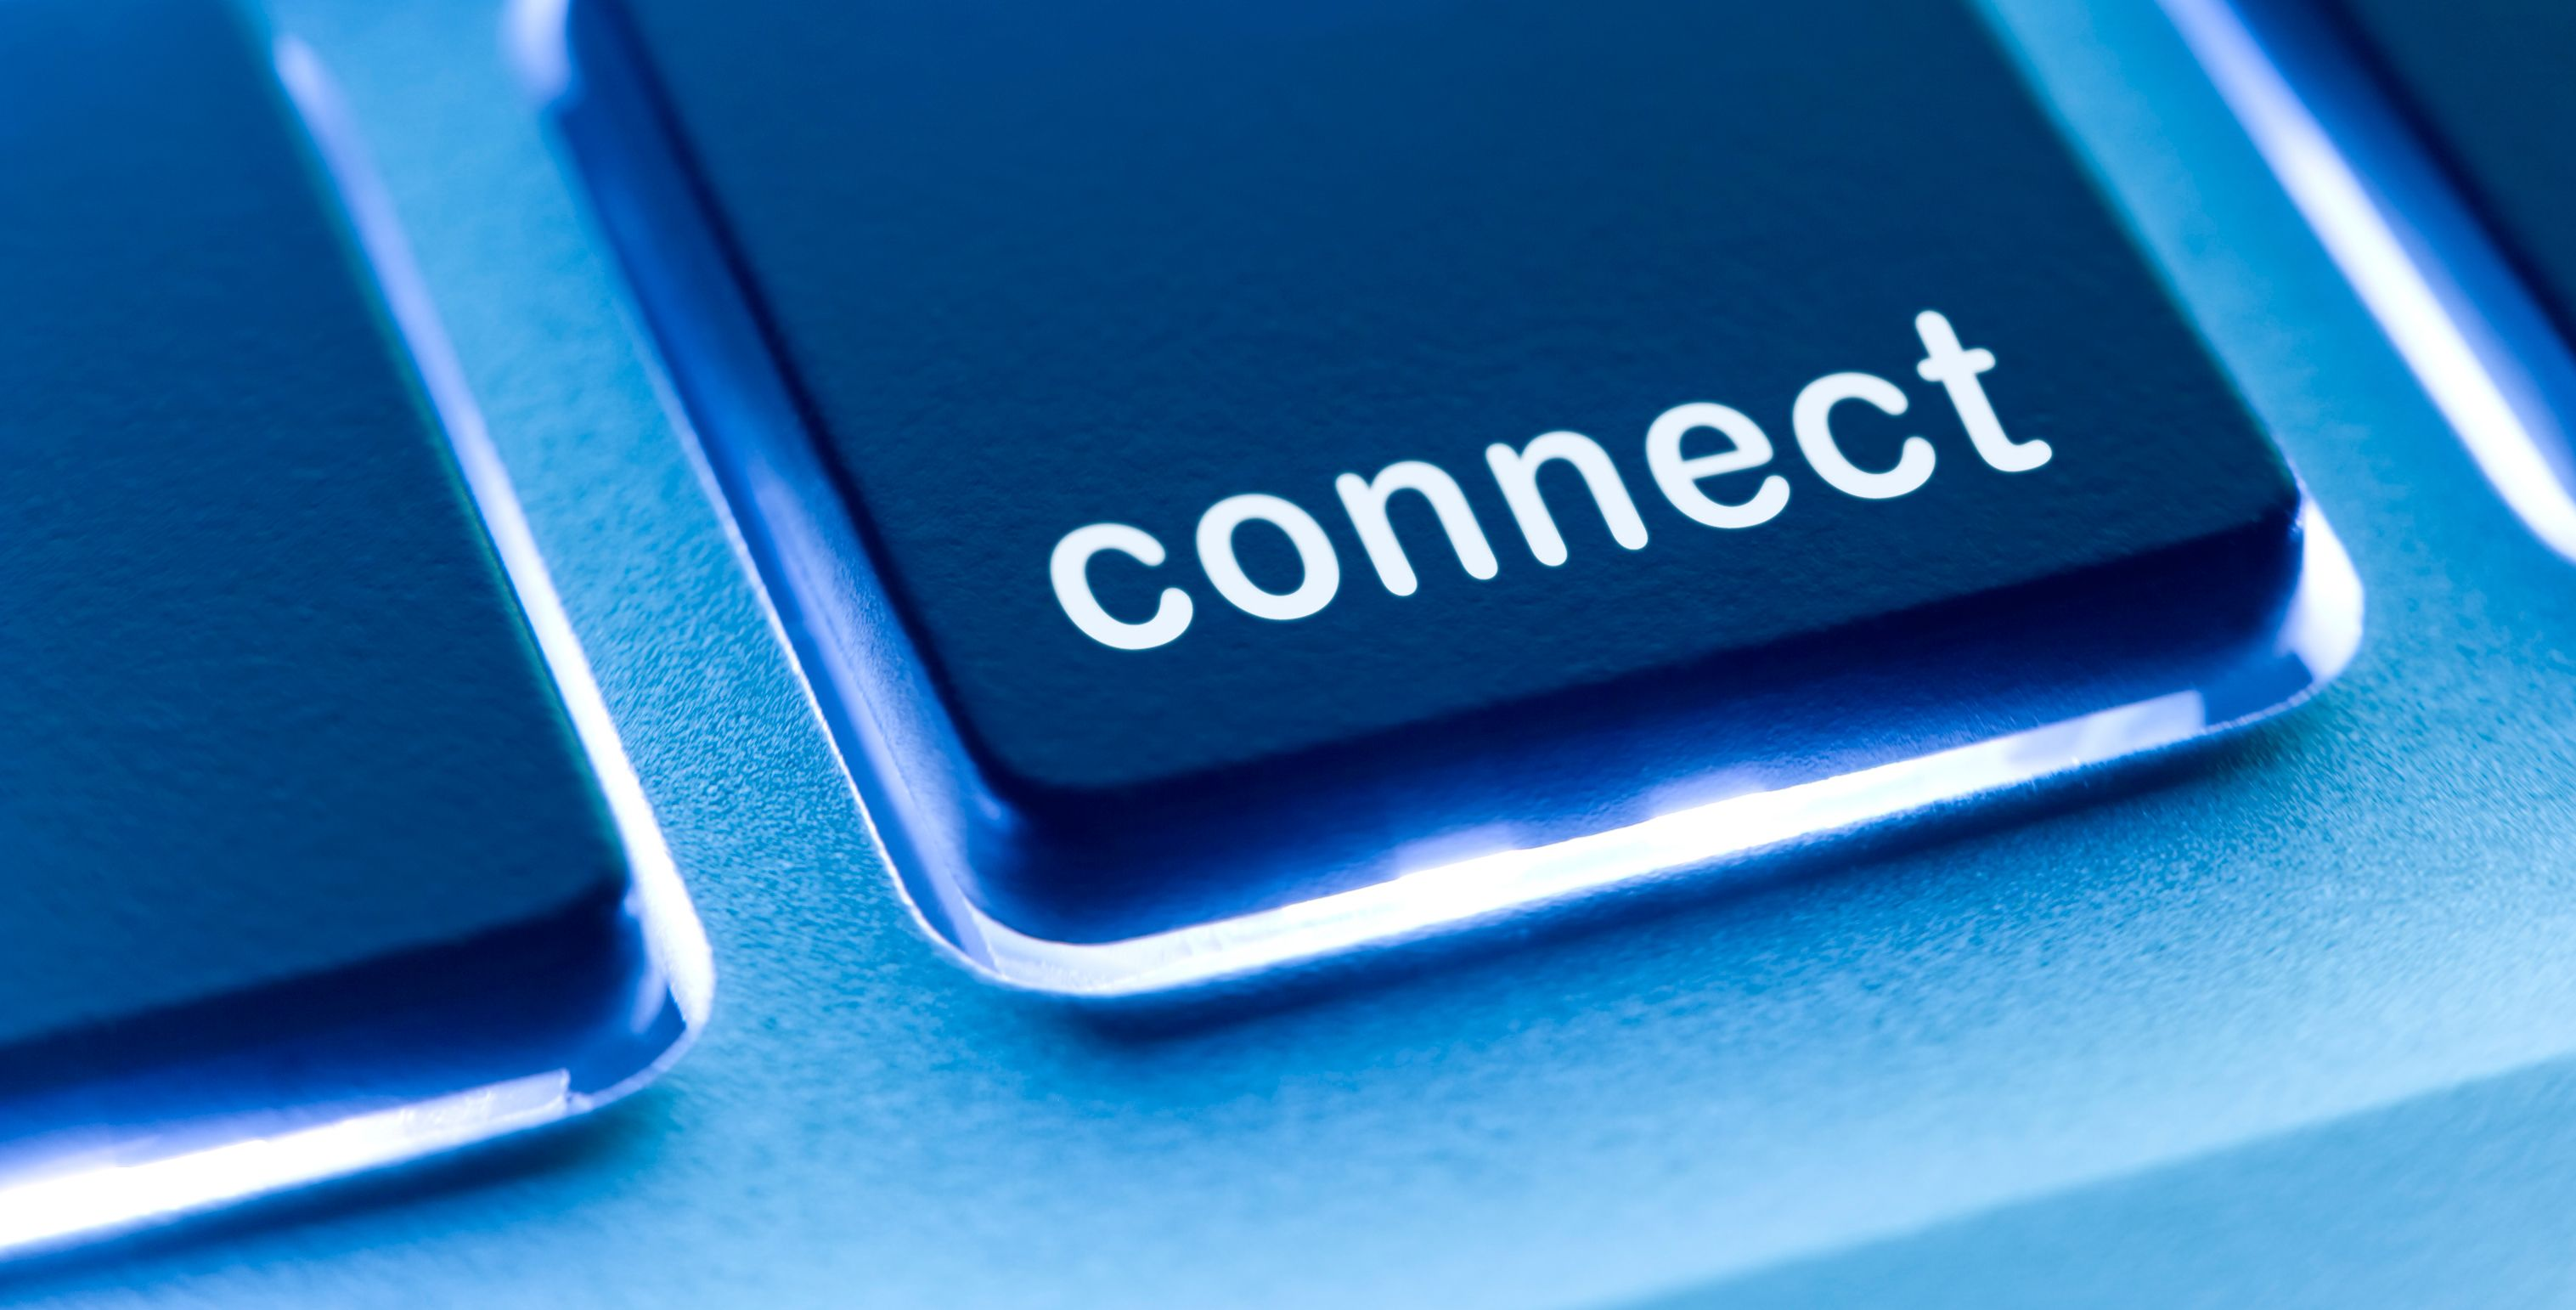 Connect button on keyboard